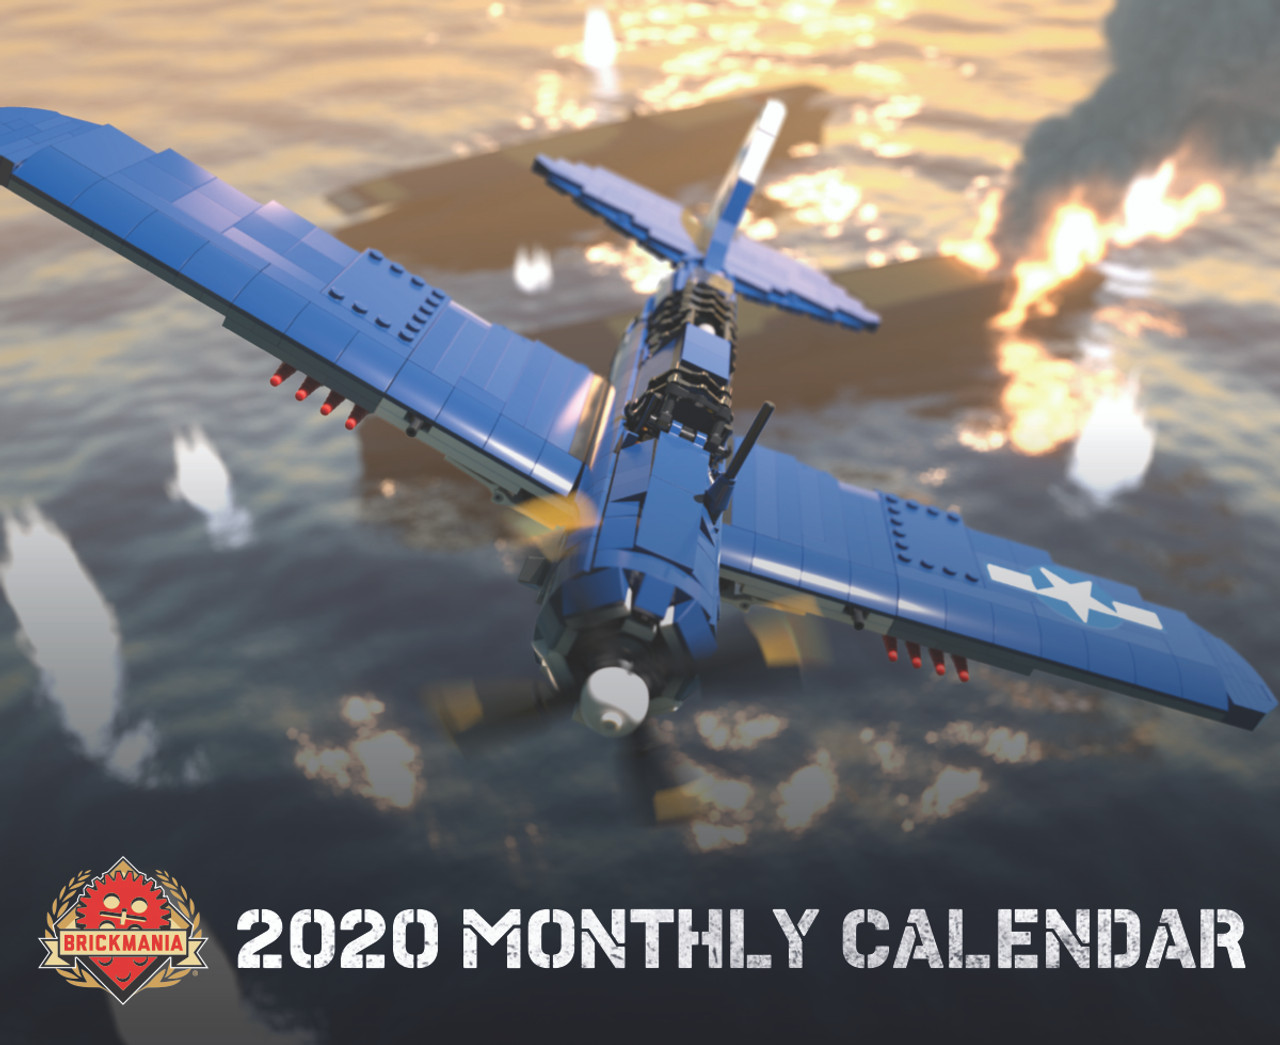 Brickmania 2020 Monthly Calendar